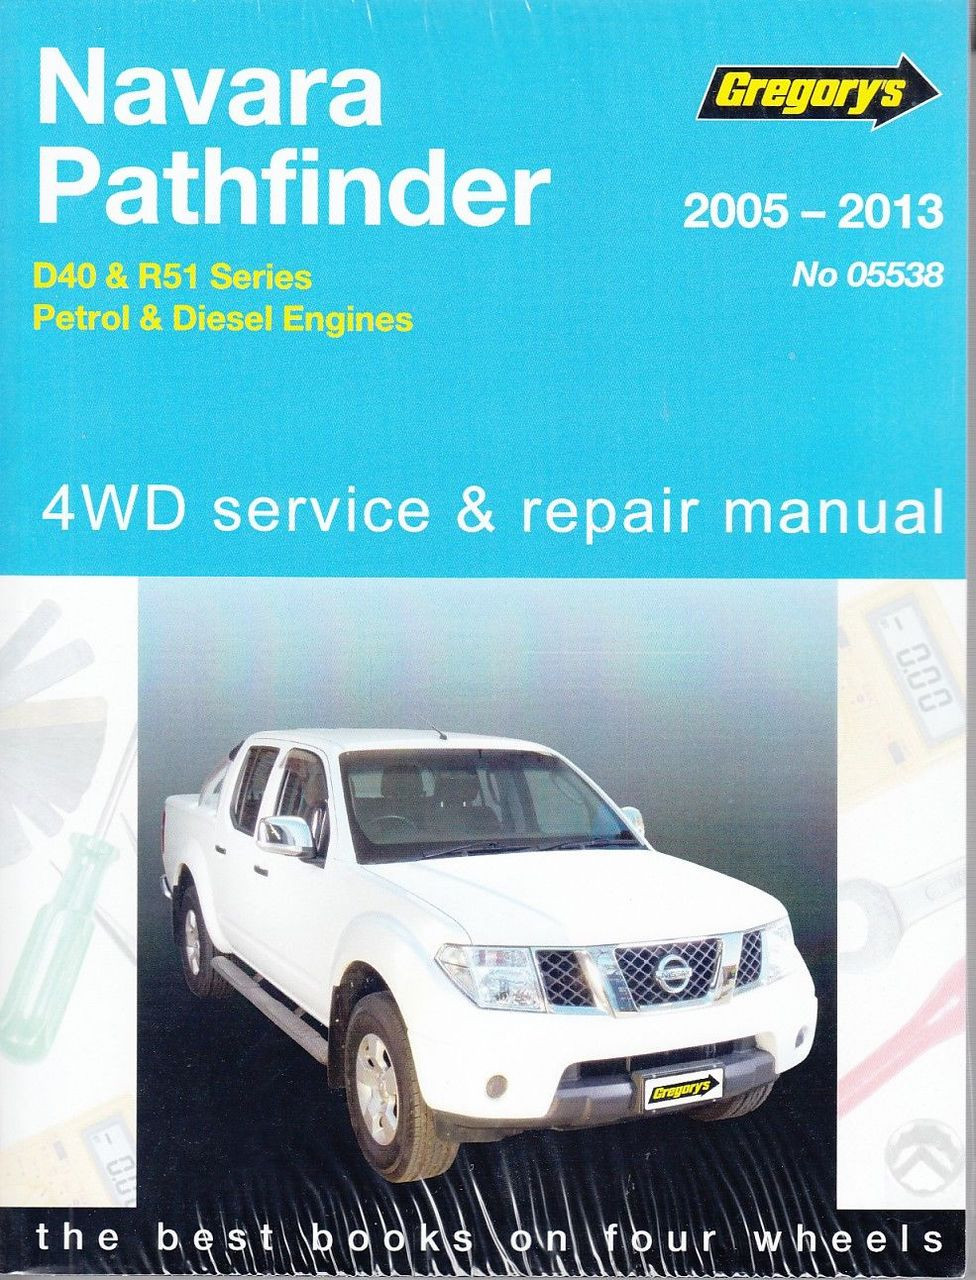 Nissan Navara, Pathfinder D40 & R51 Petrol, Diesel 2005 - 2013 Workshop  Manual ...